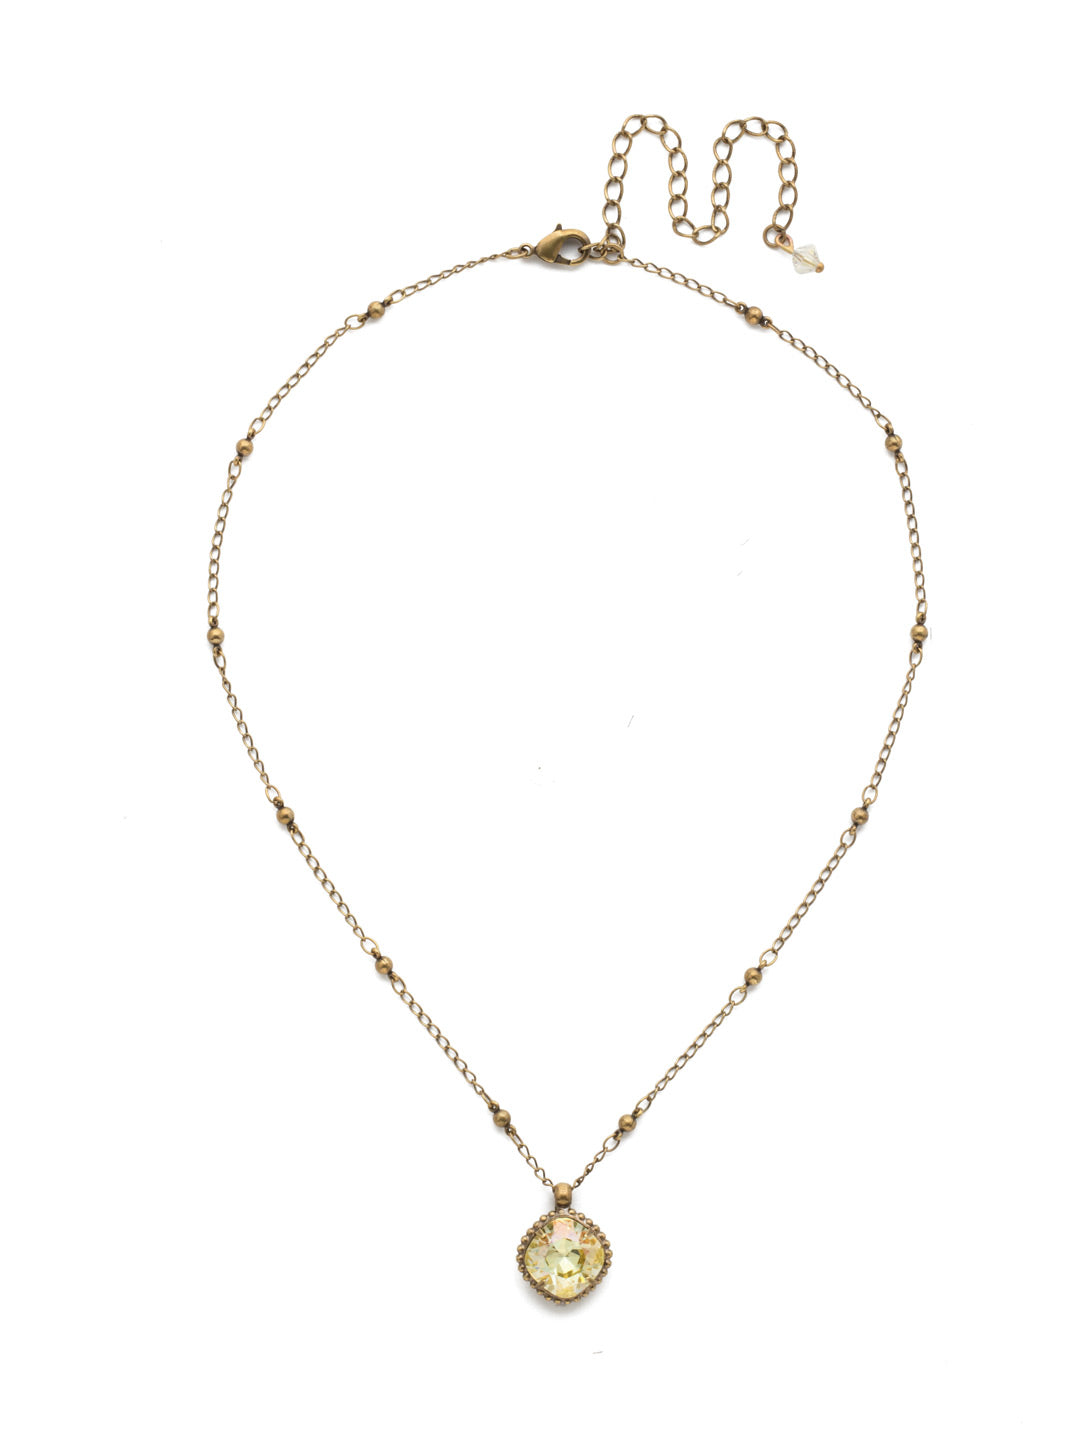 Cushion-Cut Solitaire Necklace - Sorrelli Essentials - NDS50AGCCH